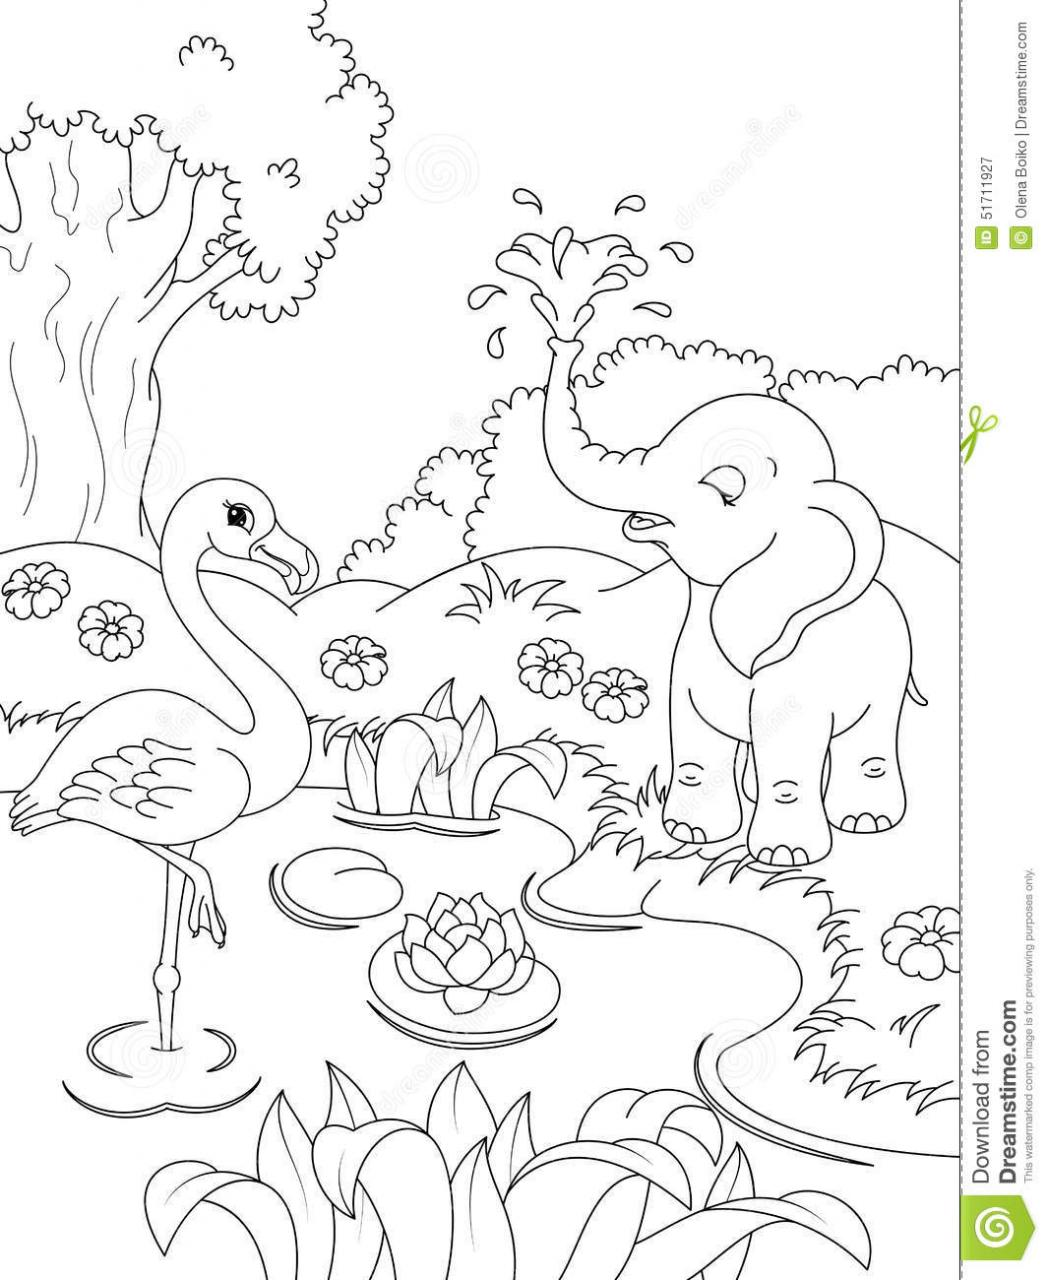 Impressive Nature Coloring Pages To Print Wonderful Colouring